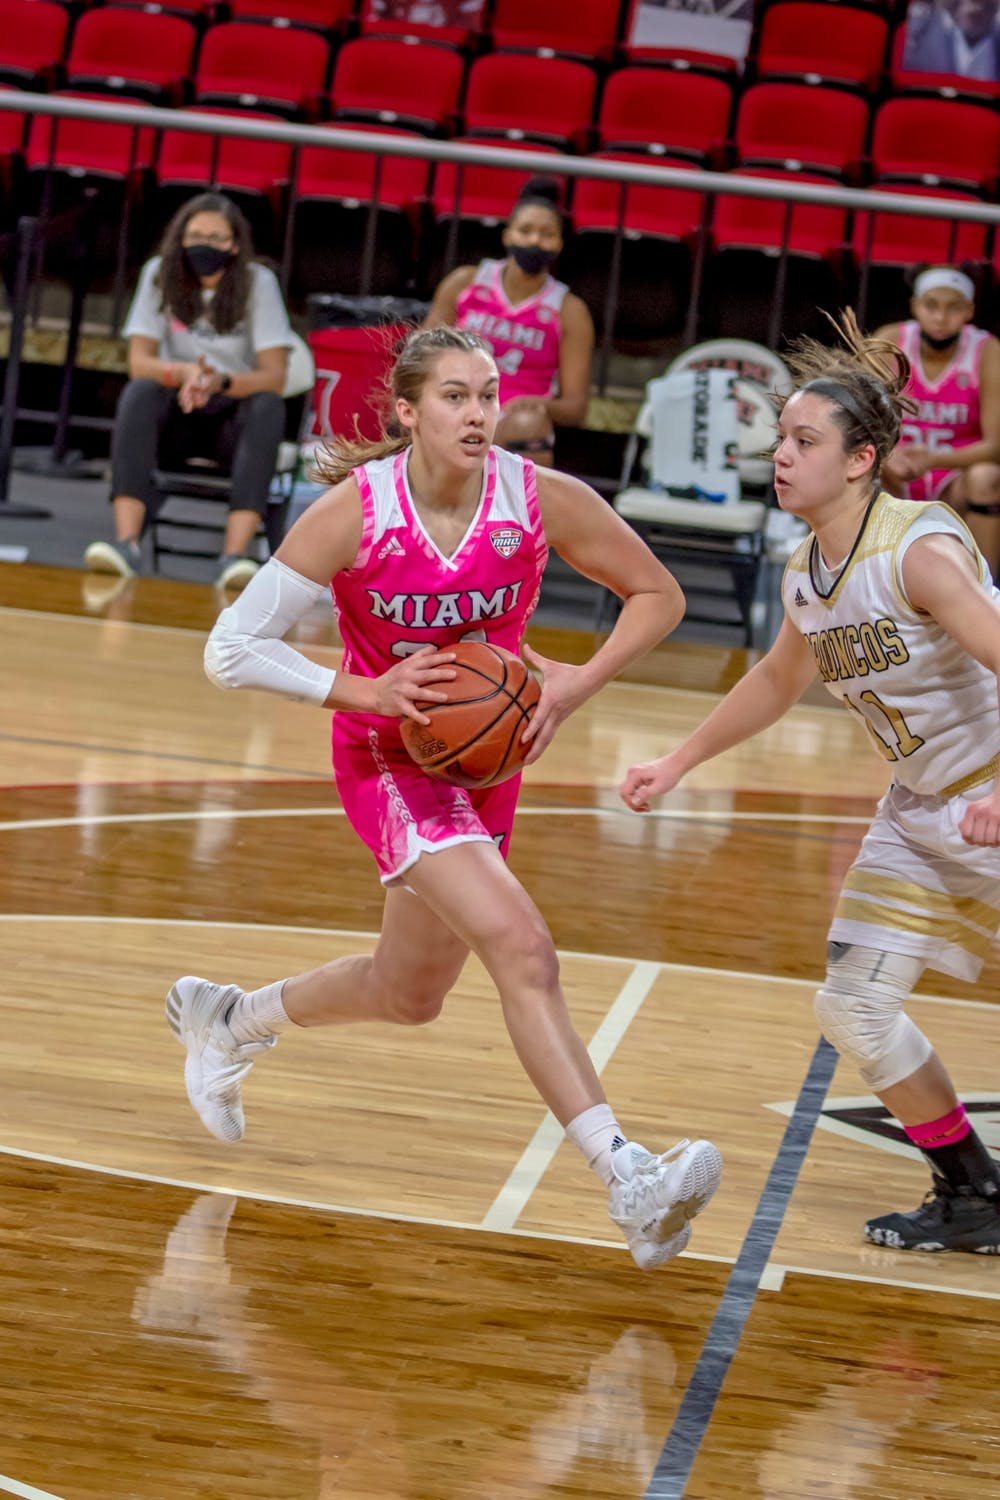 <p>Sophomore guard Peyton Scott has scored 30 points in each of her last two games</p>